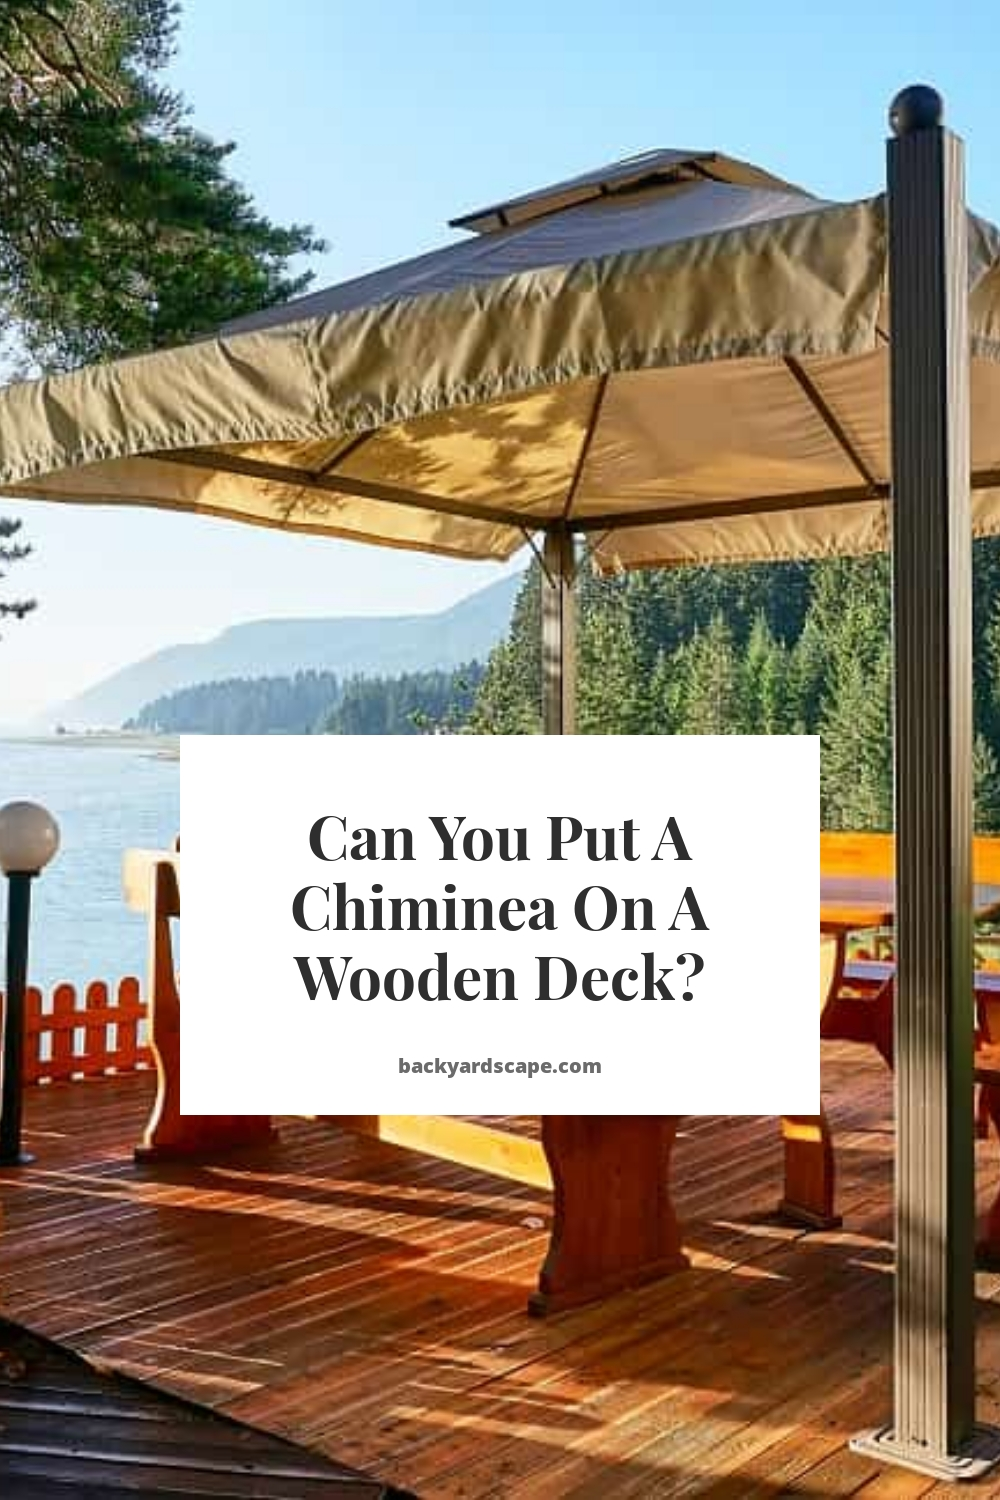 Can You Put A Chiminea On A Wooden Deck?